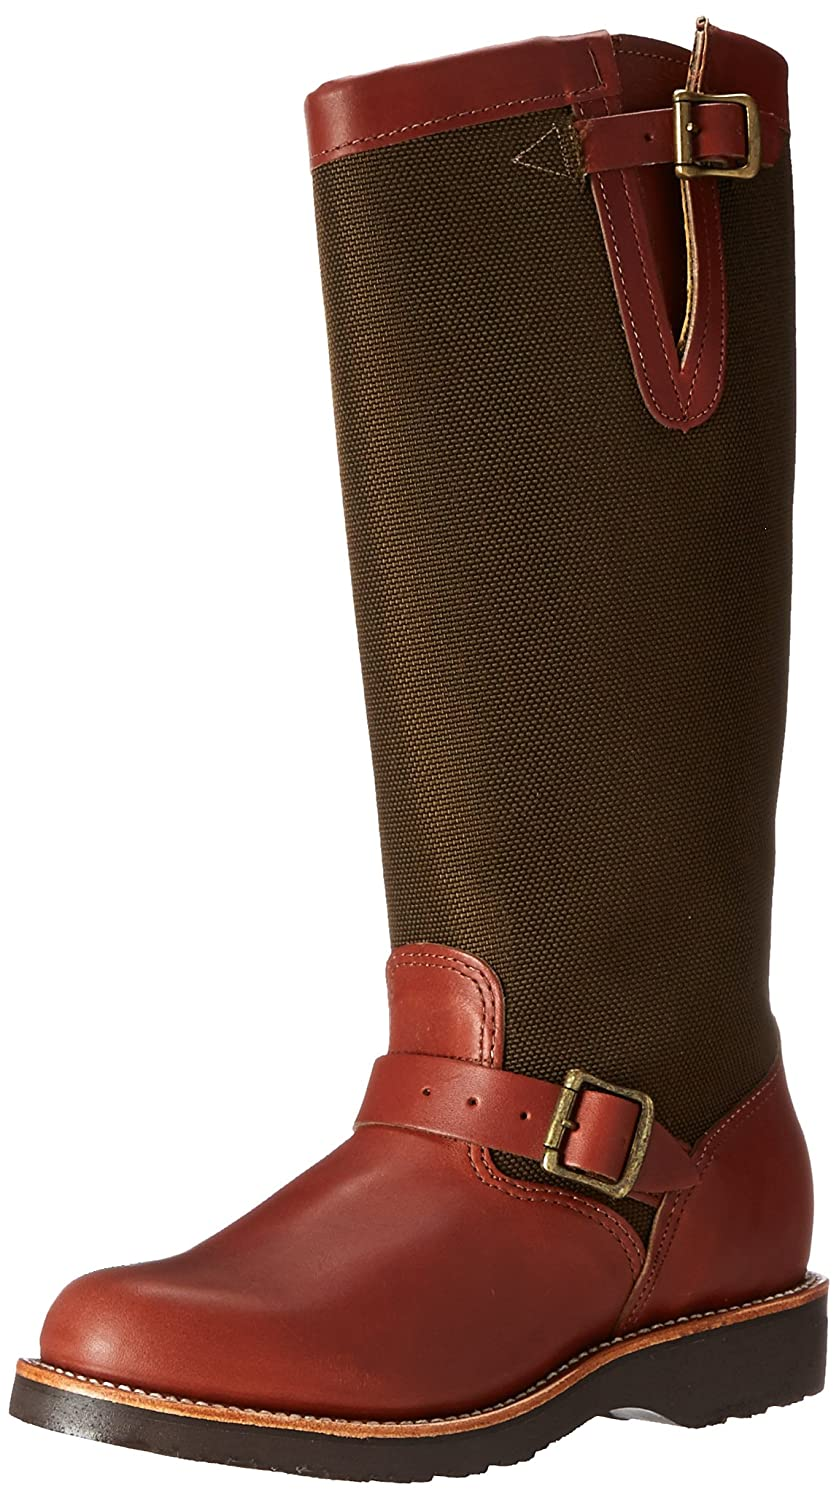 "Chippewa Women's 15"" Pull On L23913 Snake Boot"